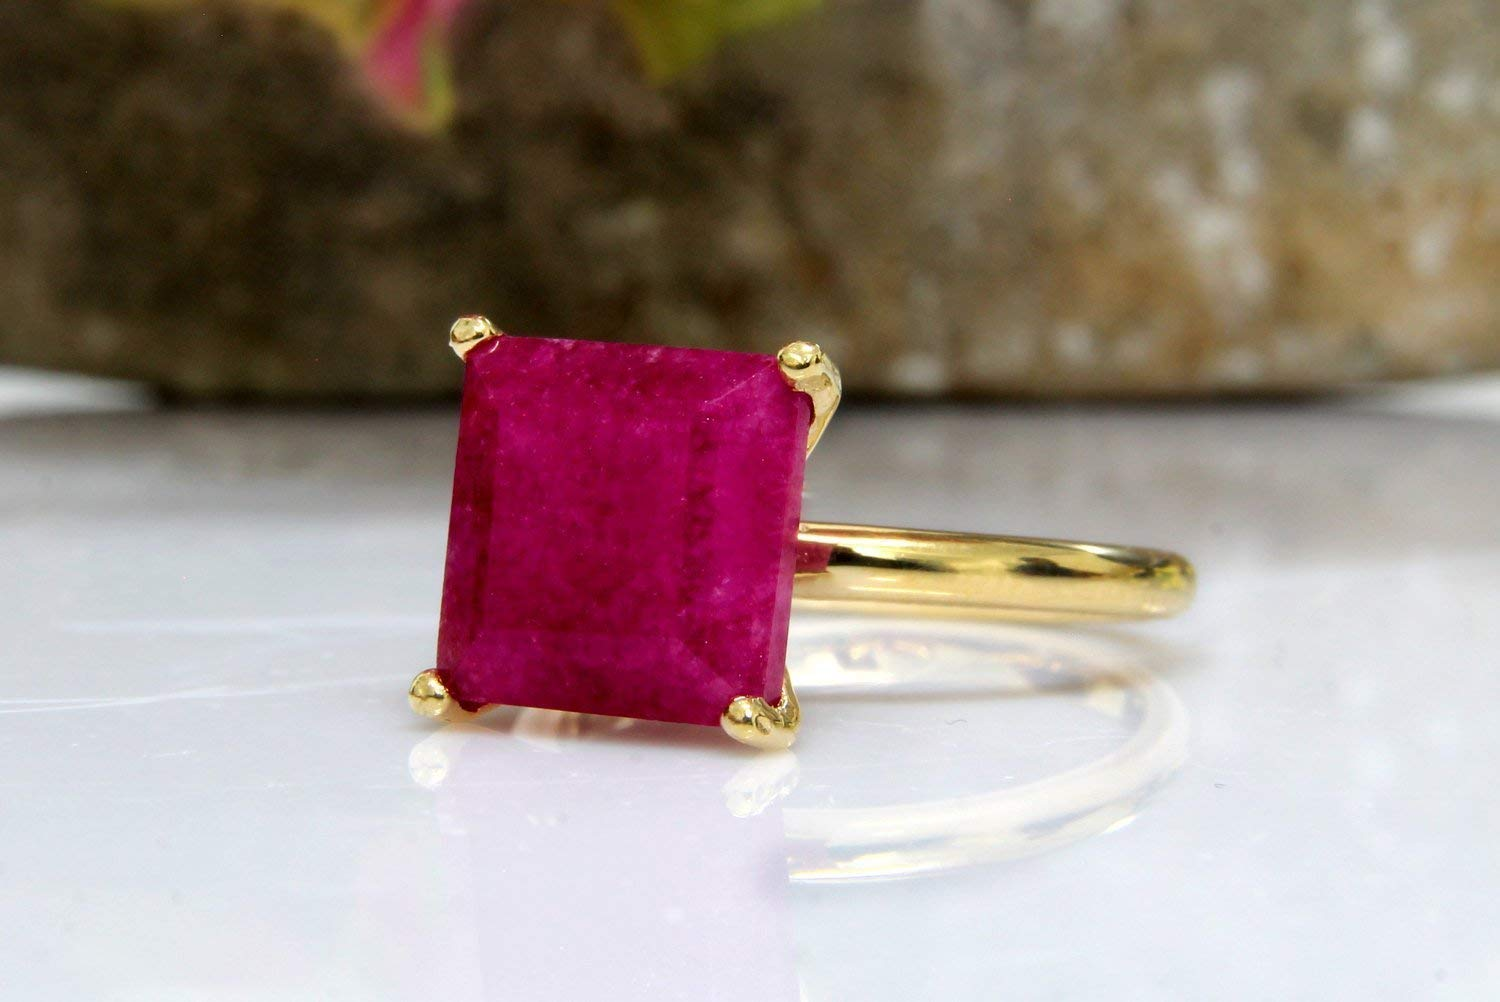 Ruby ring,gold ring,gemstone ring,July birthstone ring,square ring,prong setting ring,delicate stone ring